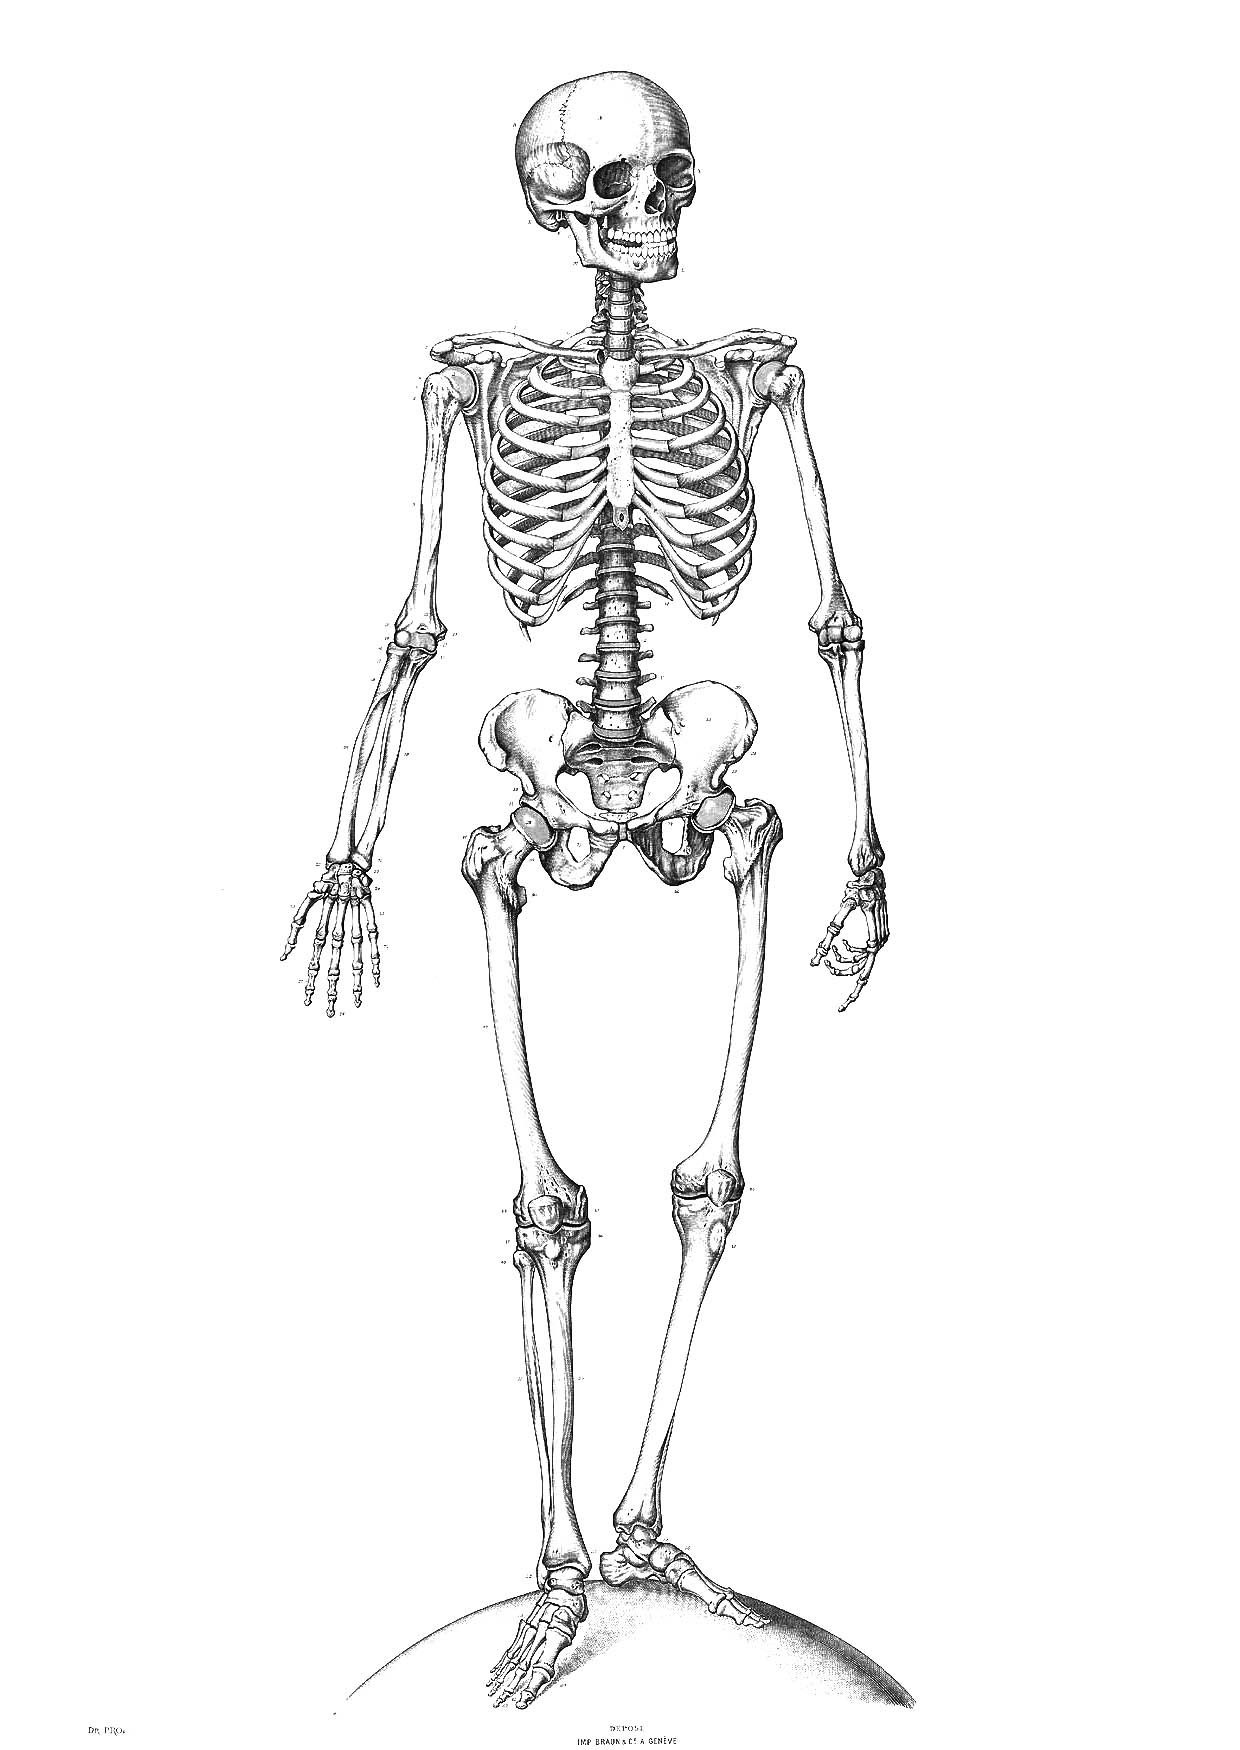 Skeleton Coloring Pages   All For The Kids!   Skeleton Drawings - Free Printable Skeleton Coloring Pages